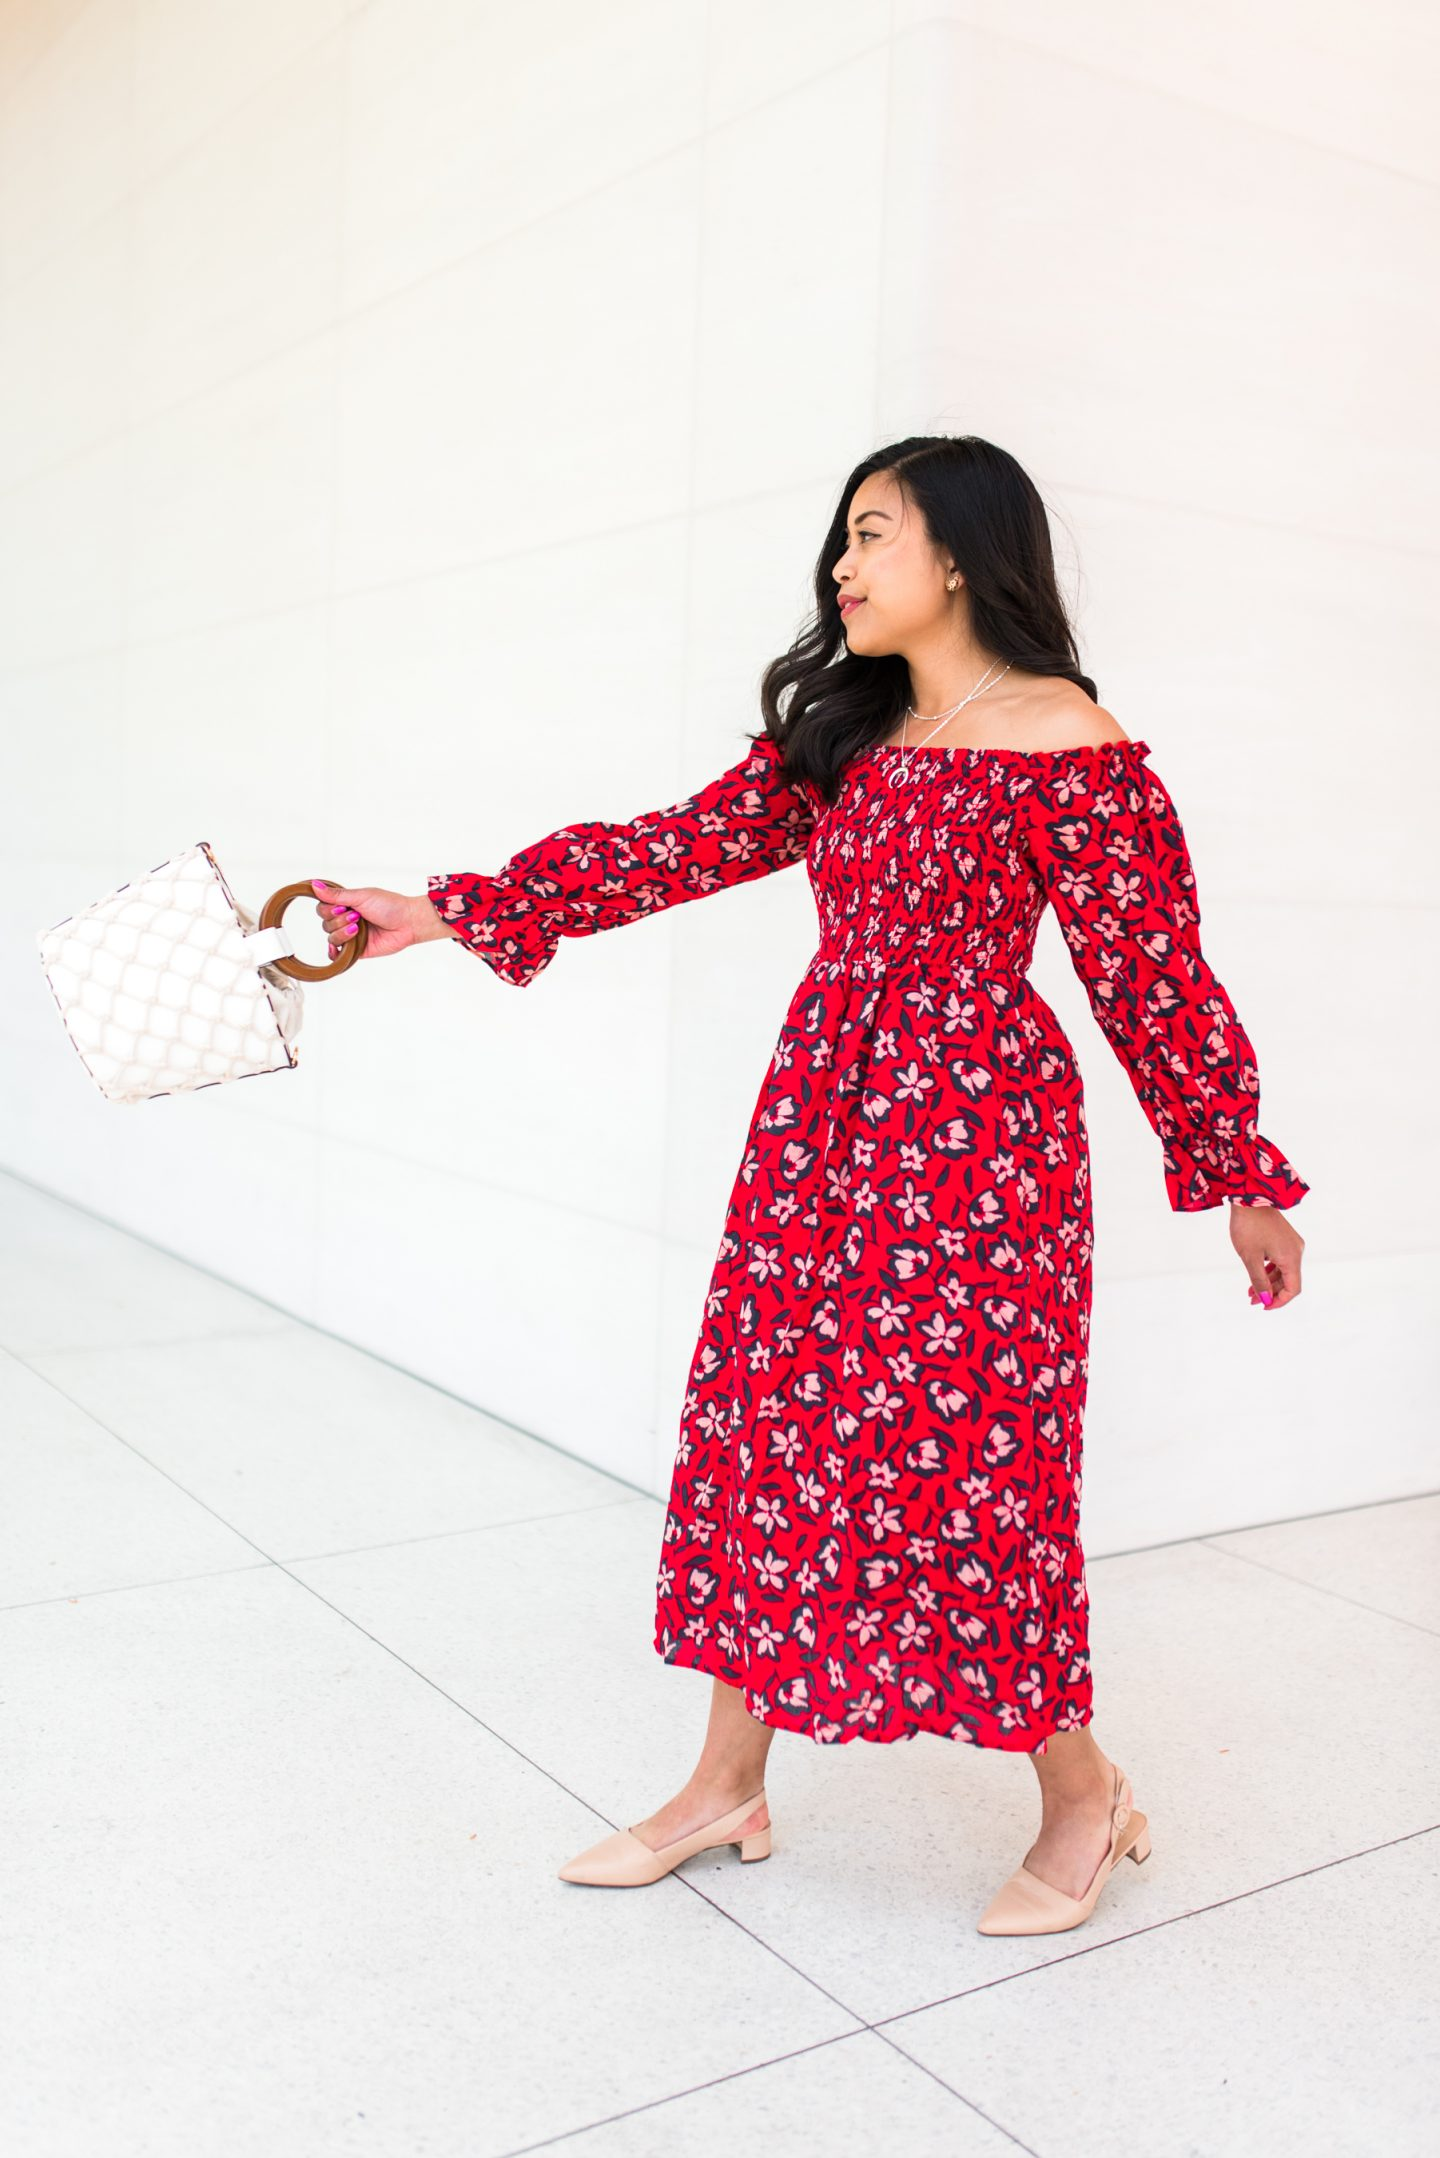 red floral dress - spring outfit ideas